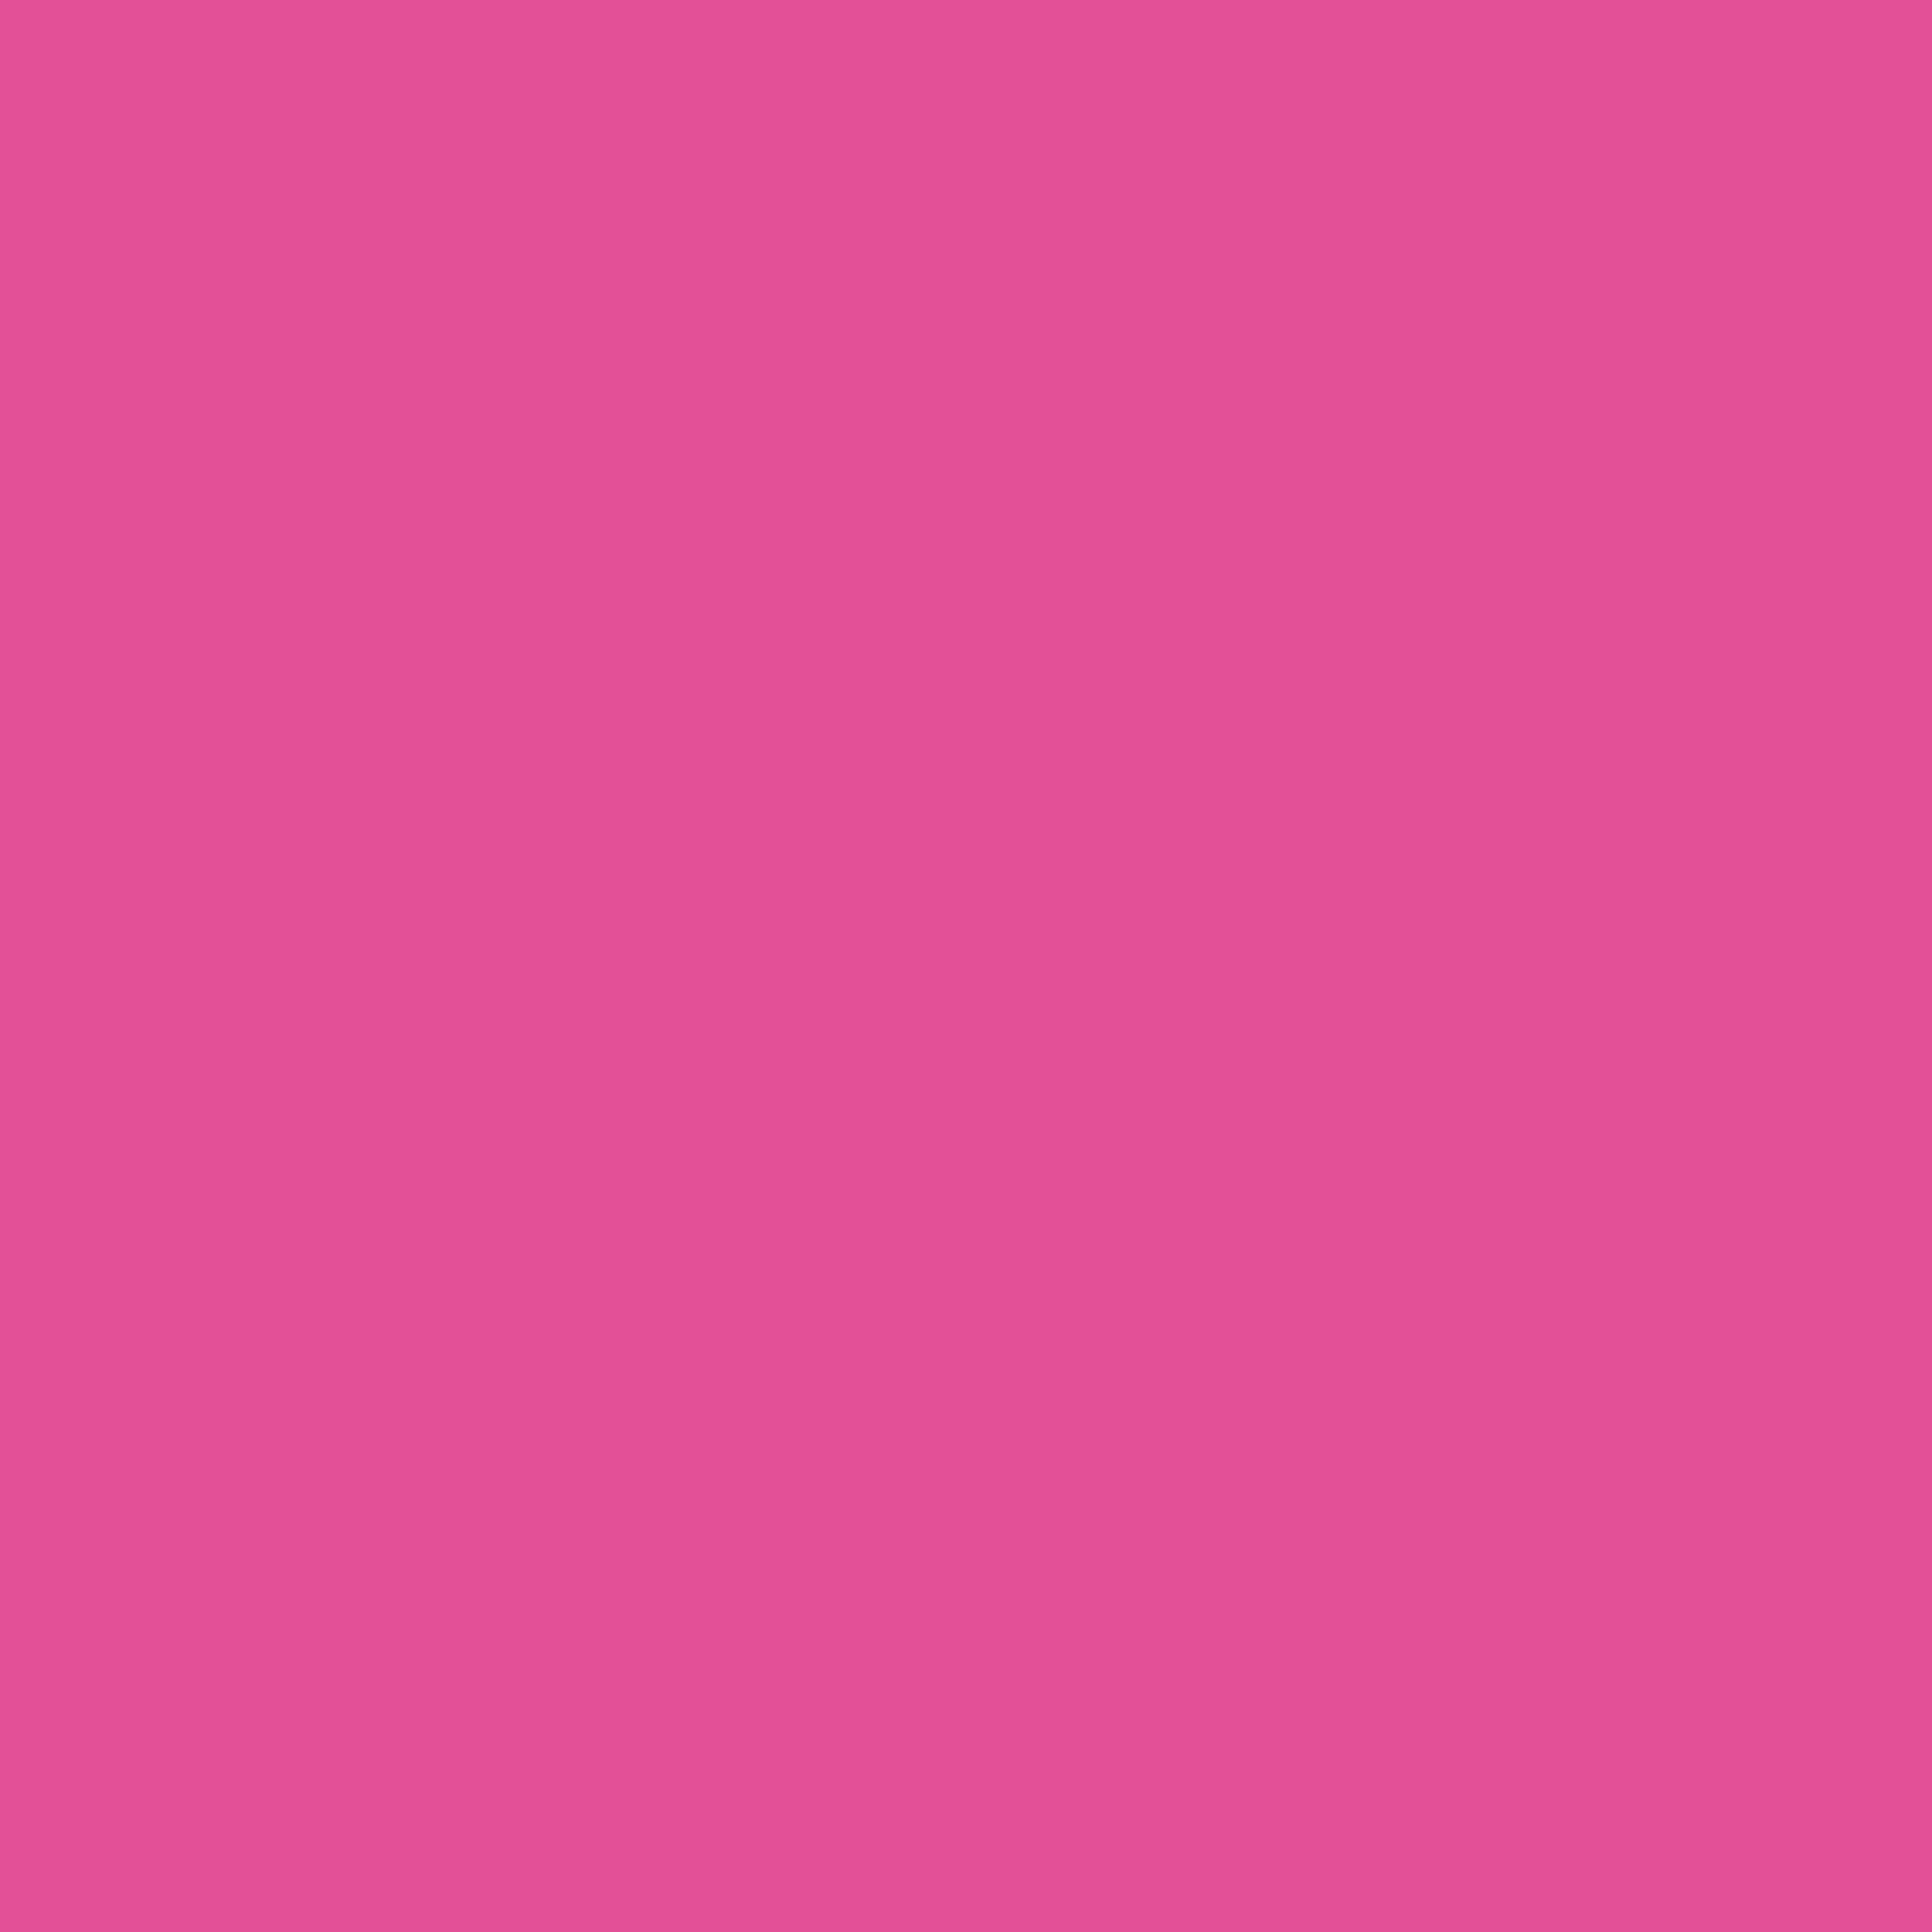 3600x3600 Raspberry Pink Solid Color Background